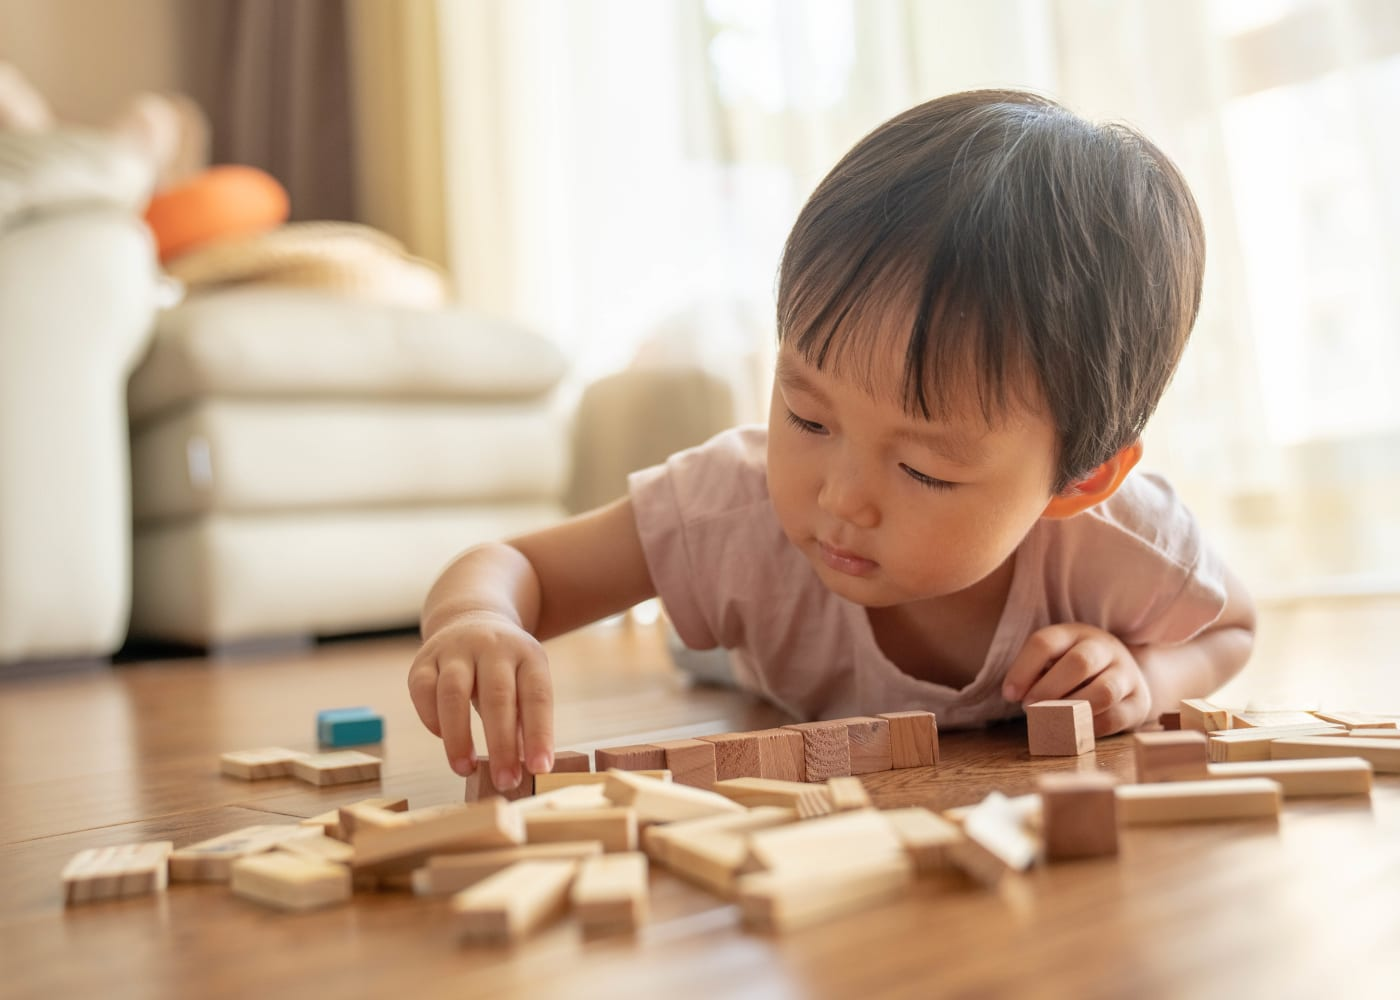 Eco-friendly toys for toddlers: we found some of the best wooden and recycled toys for a greener playtime